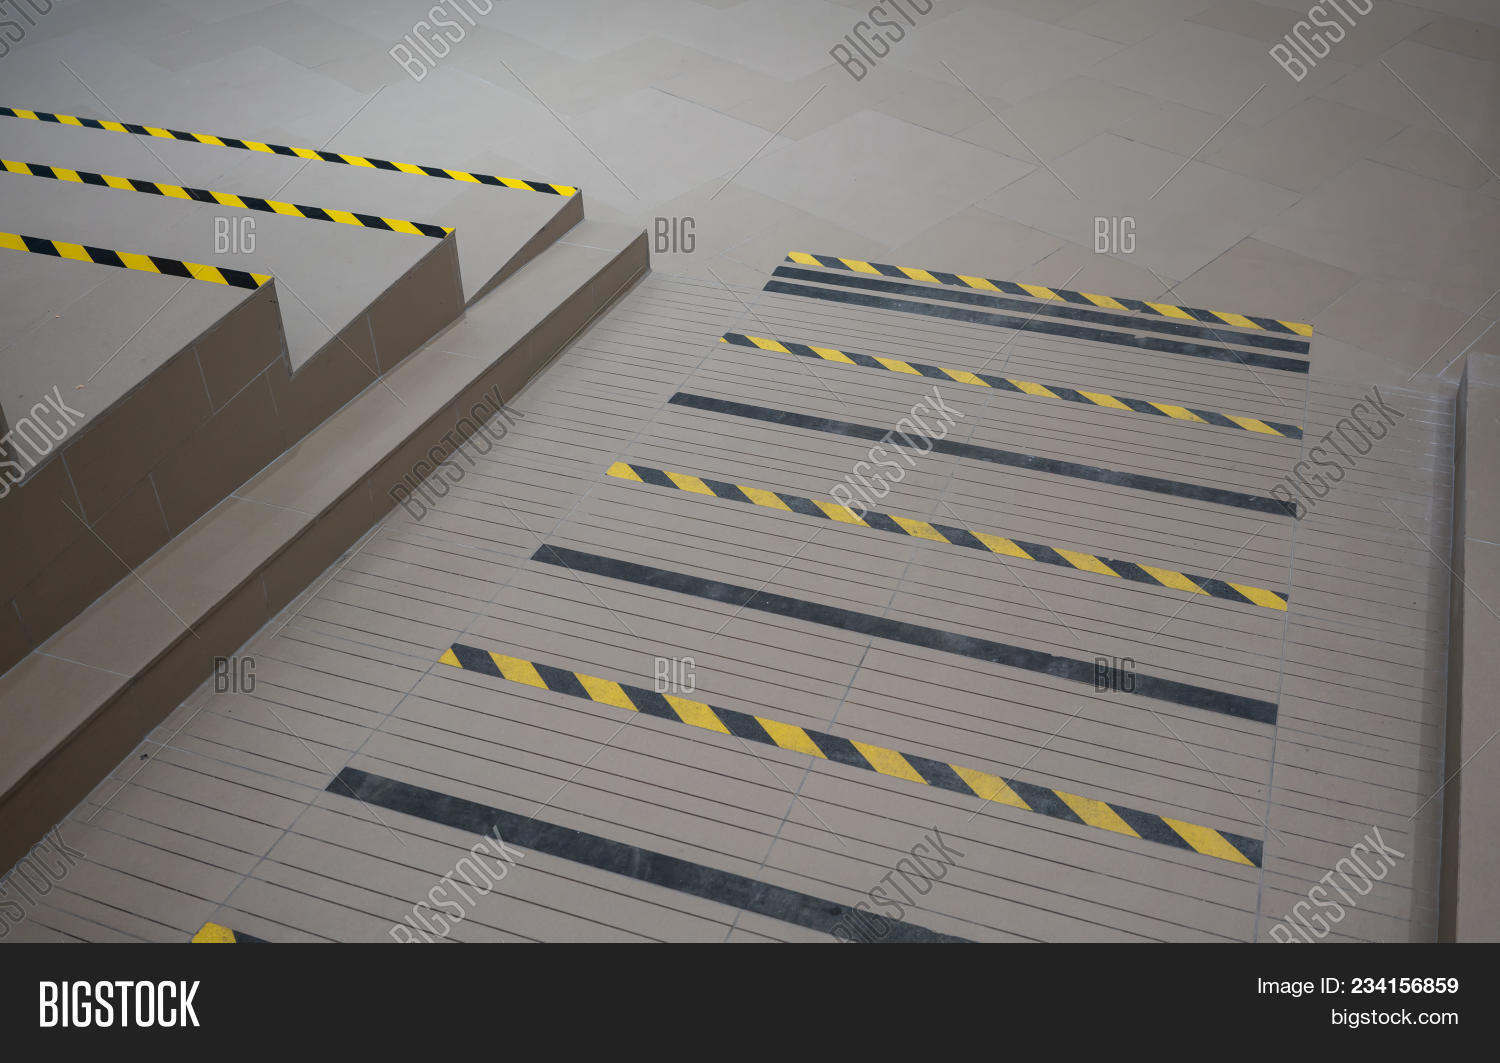 Industrial Striped Image & Photo (Free Trial) | Bigstock